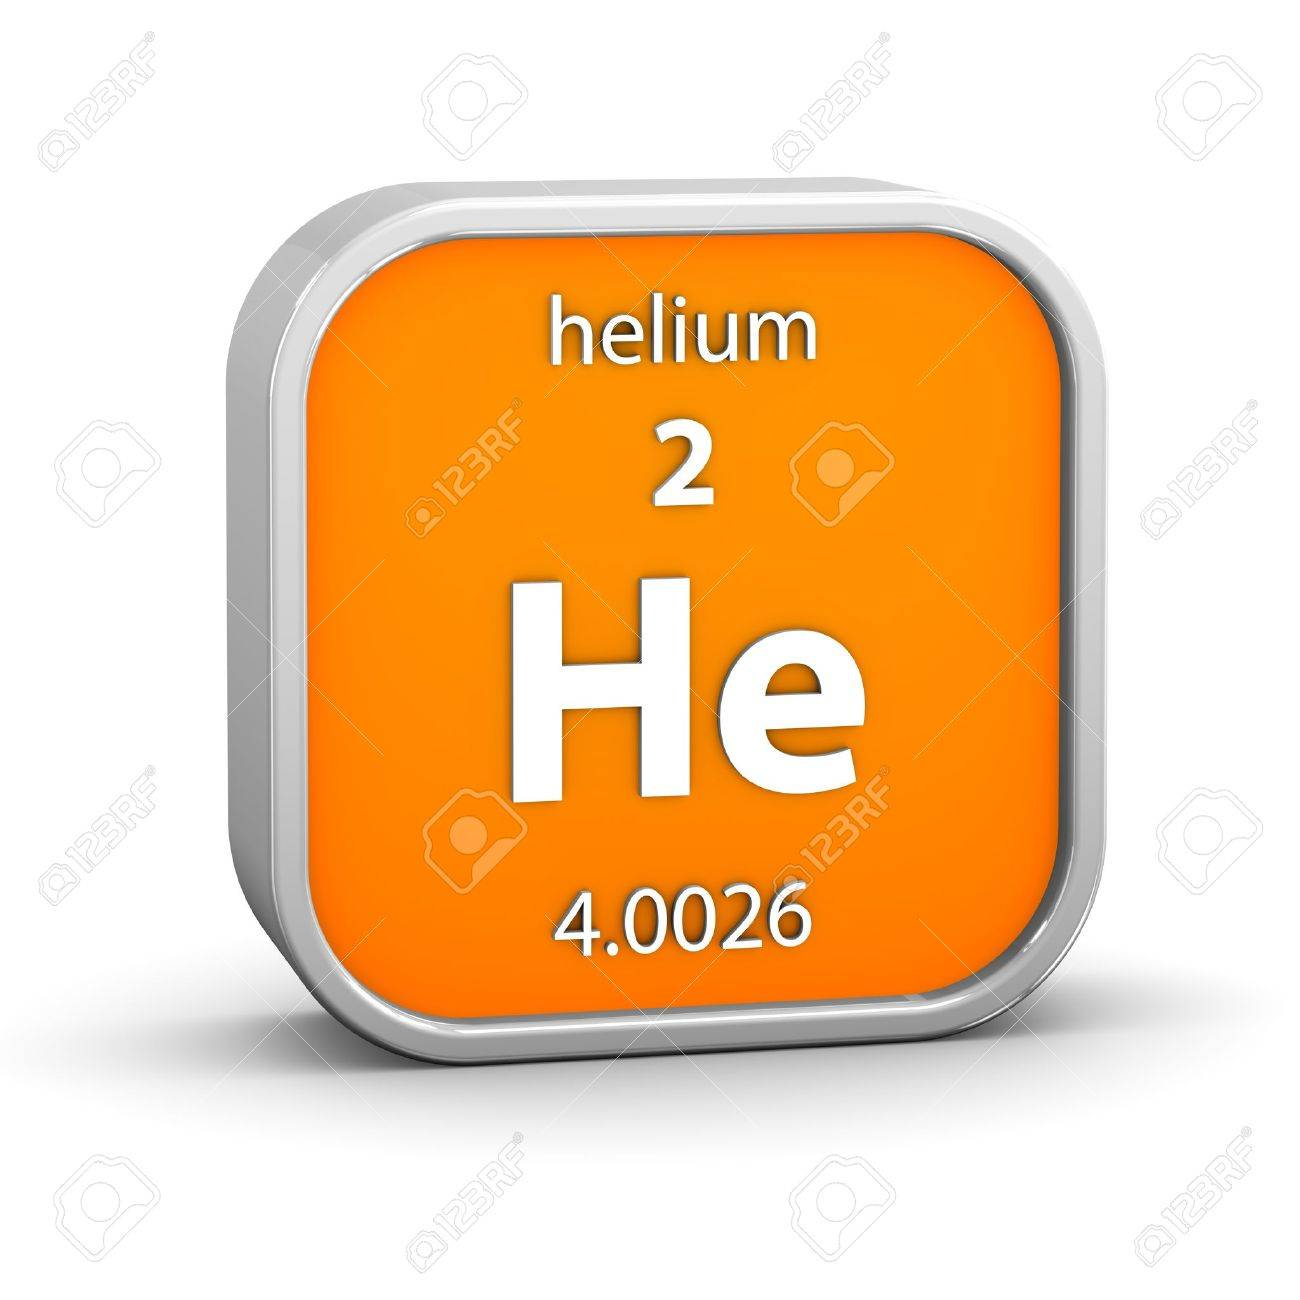 What is the symbol for helium on the periodic table image helium material on the periodic table part of a series stock helium material on the periodic gamestrikefo Images